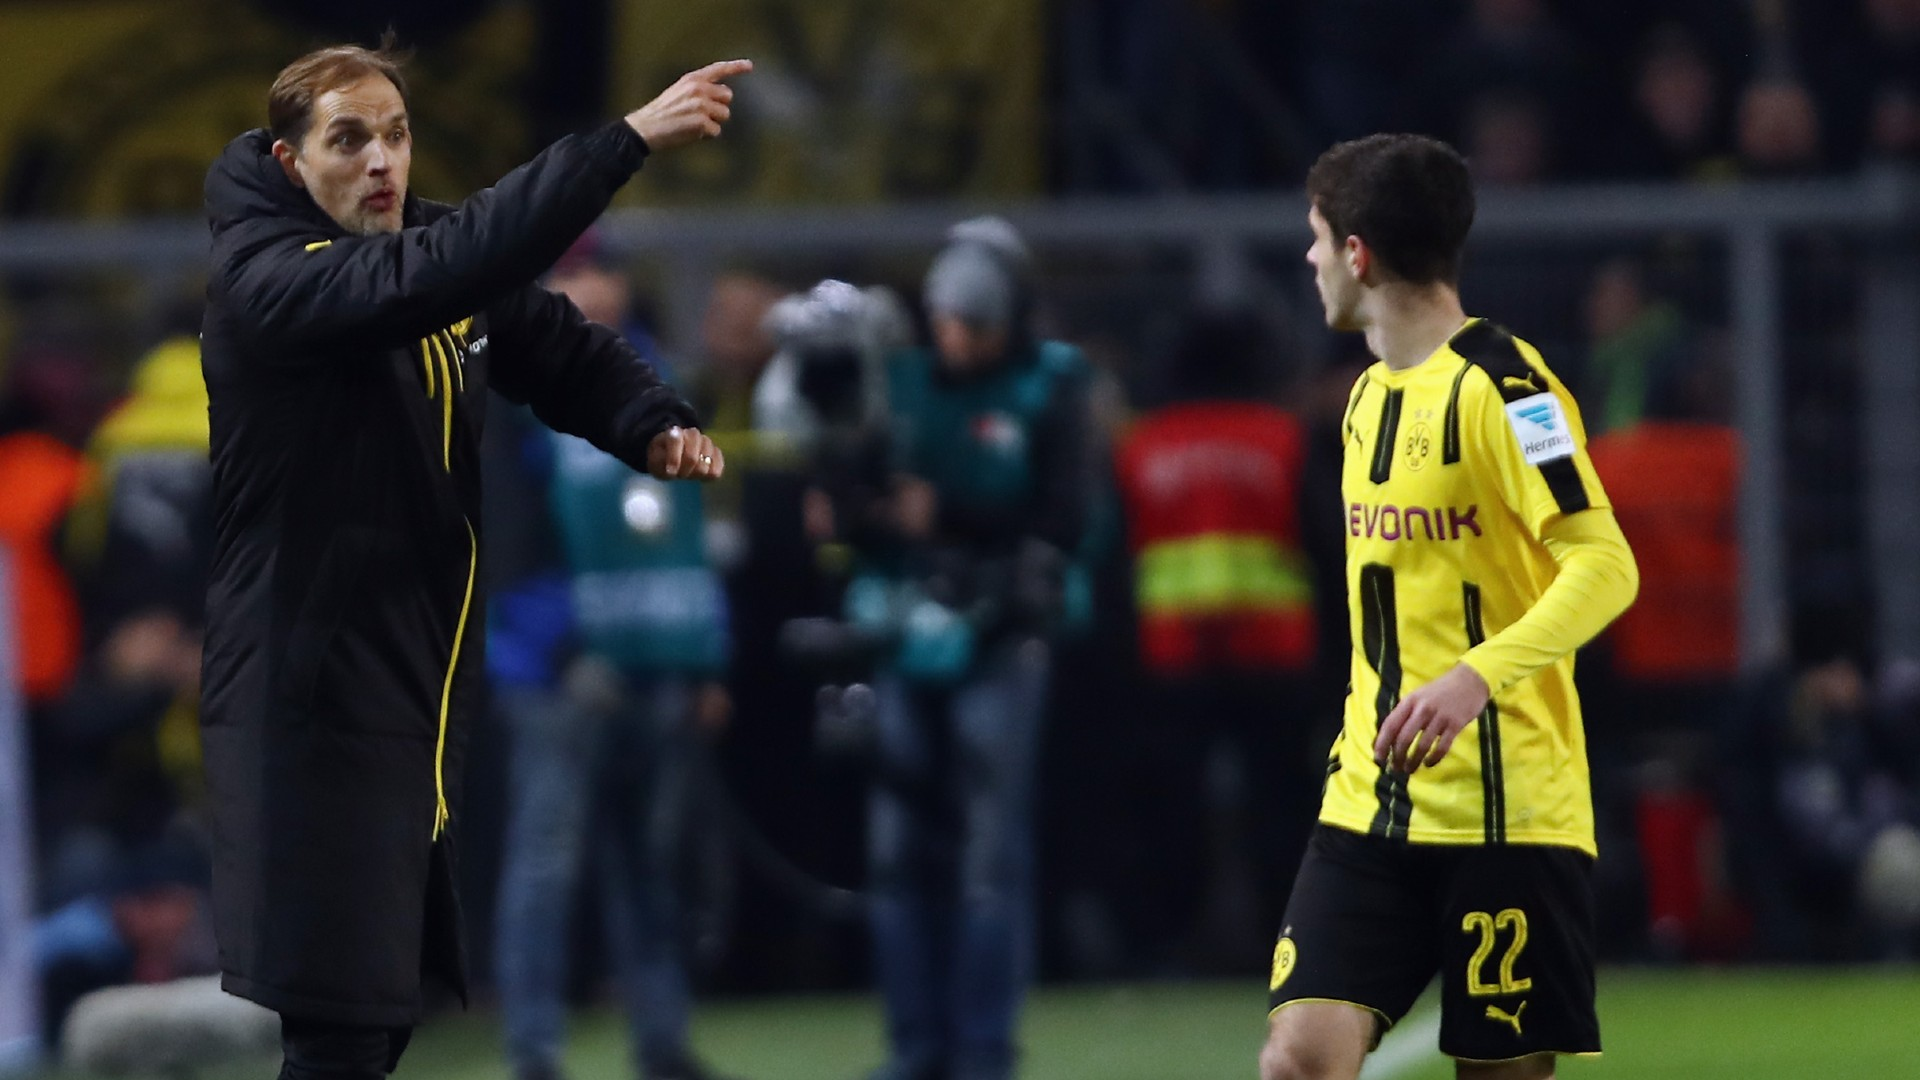 'Pulisic knows him very well' - USMNT boss Berhalter expects Chelsea winger to have 'understanding' with incoming Tuchel